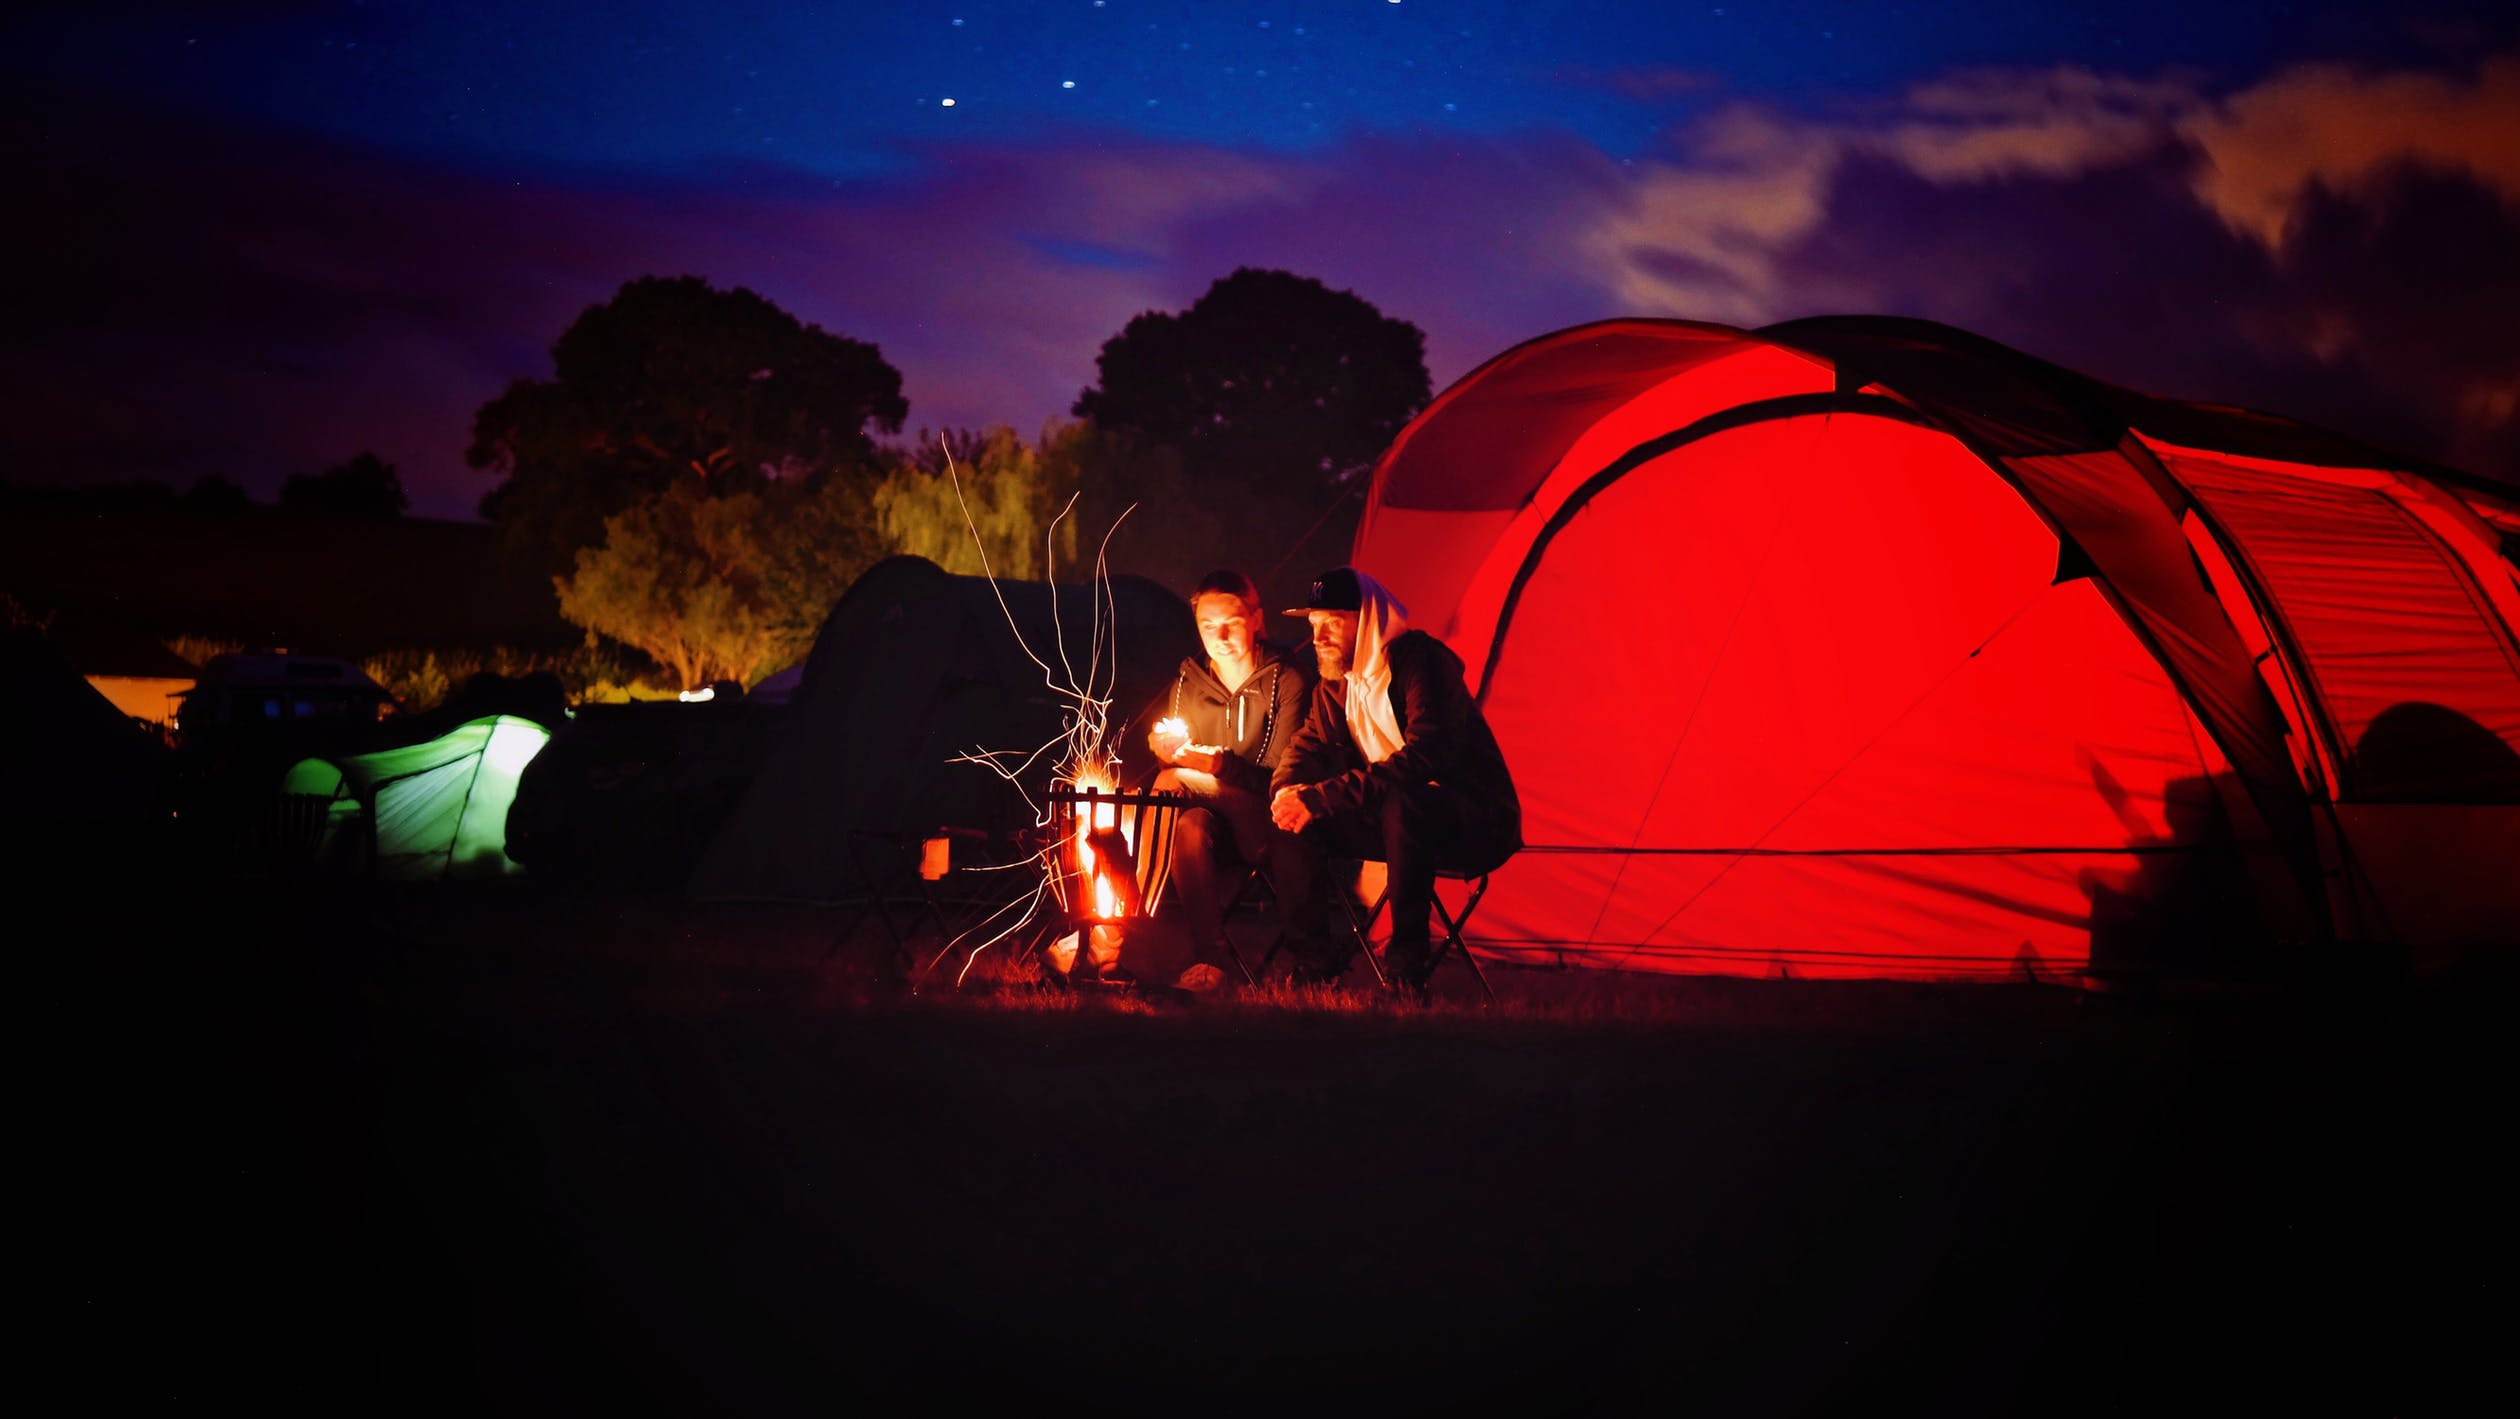 Calming Effects of Camping|camping-calming|calming-camping|camping-calming-anxiety